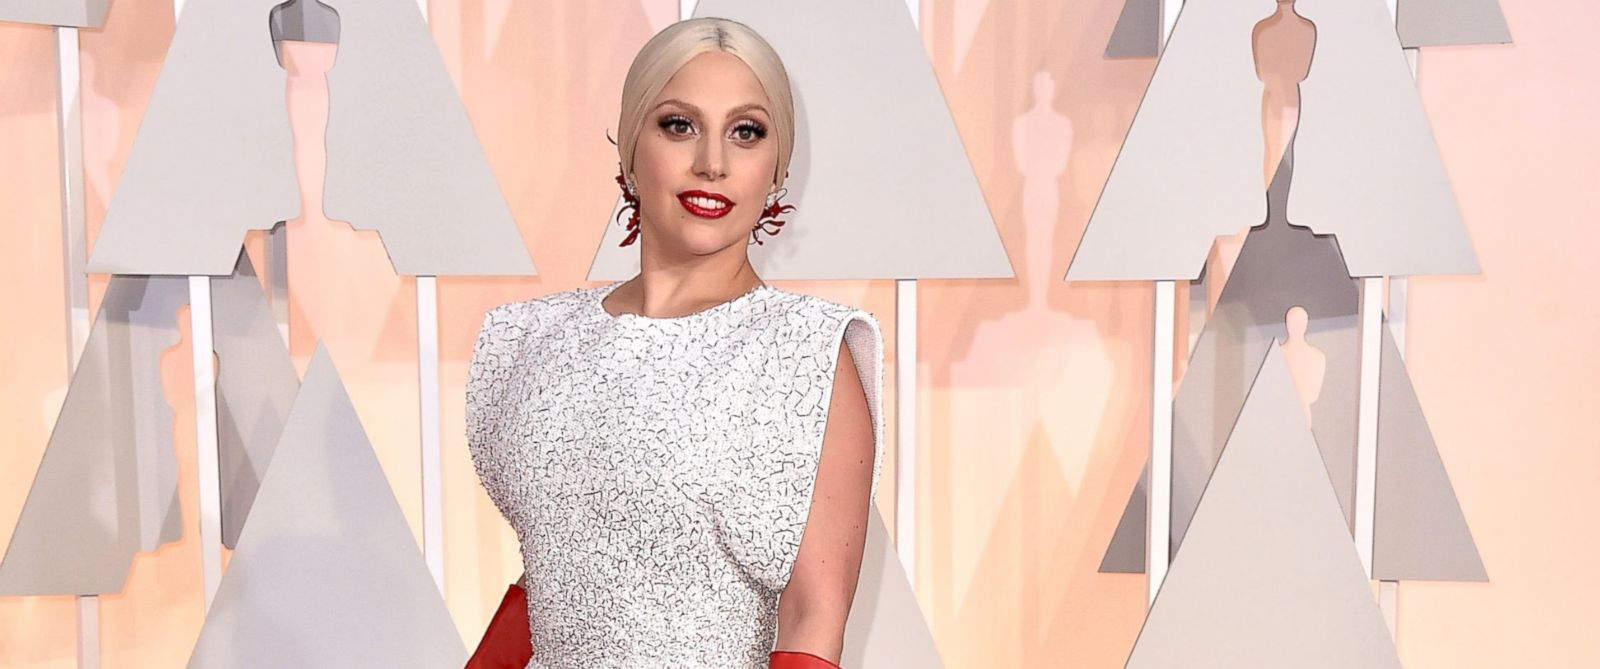 PHOTO: Lady Gaga arrives at the Oscars on Feb. 22, 2015 at the Dolby Theatre in Los Angeles.